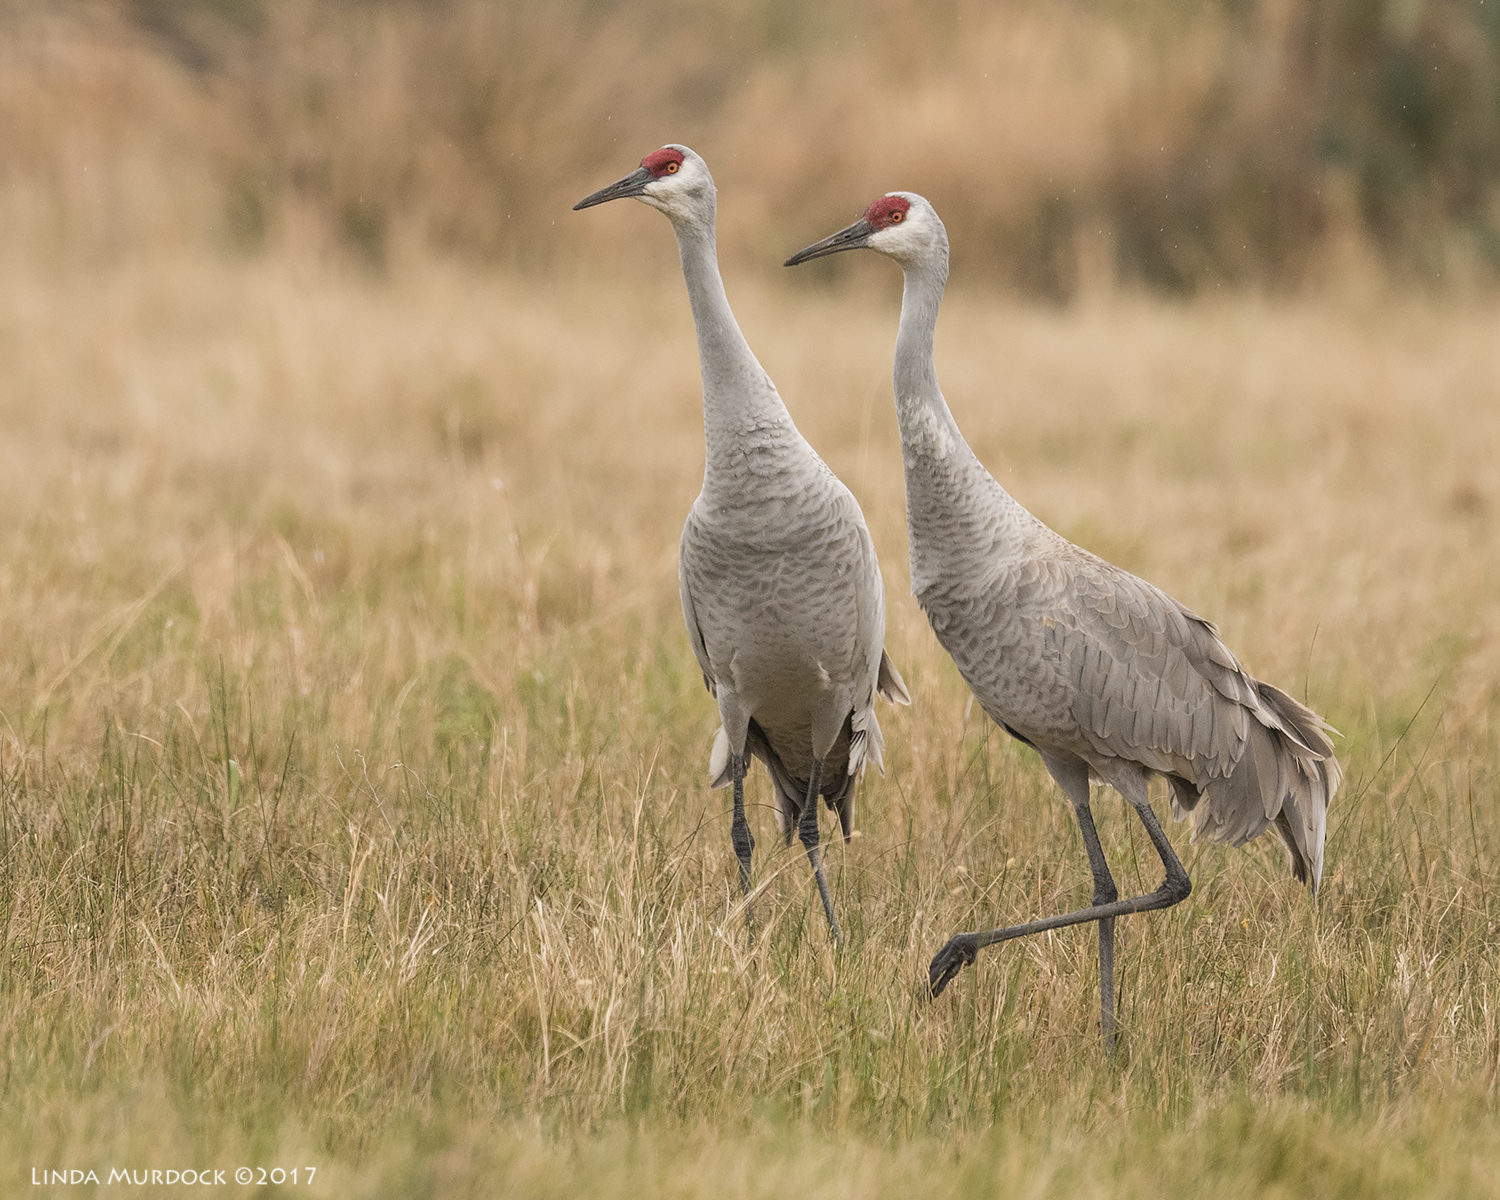 A mated pair of Sandhill Cranes Nikon D810 with NIKKOR 500mm f/4E VR + Nikon 1.4x TC ~ 1/1250   sec f/6.3 ISO 1000; tripod